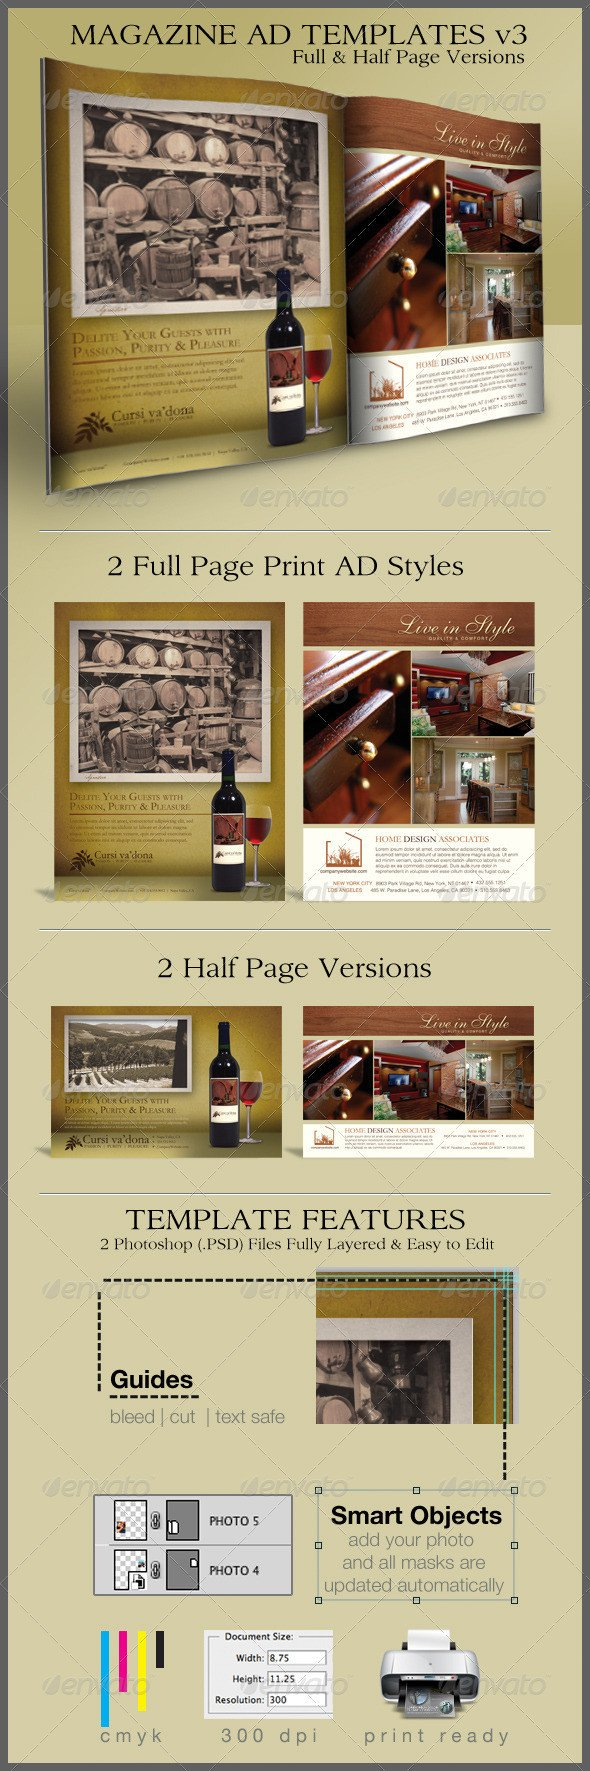 Half Page Advertisement Template Print Ad Templates and Layouts V3 On Behance